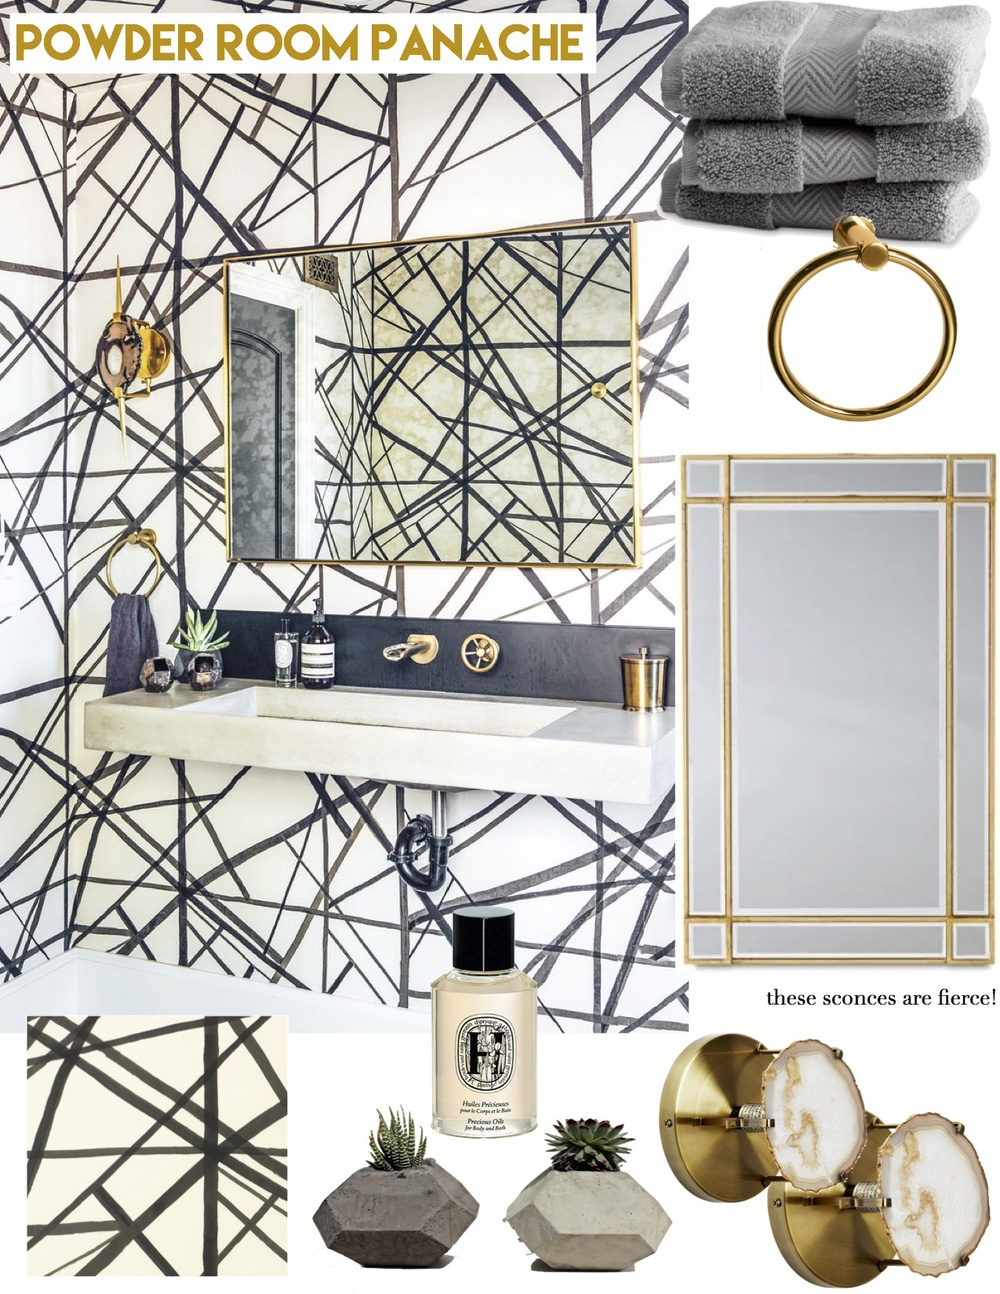 get the look: powder room panache